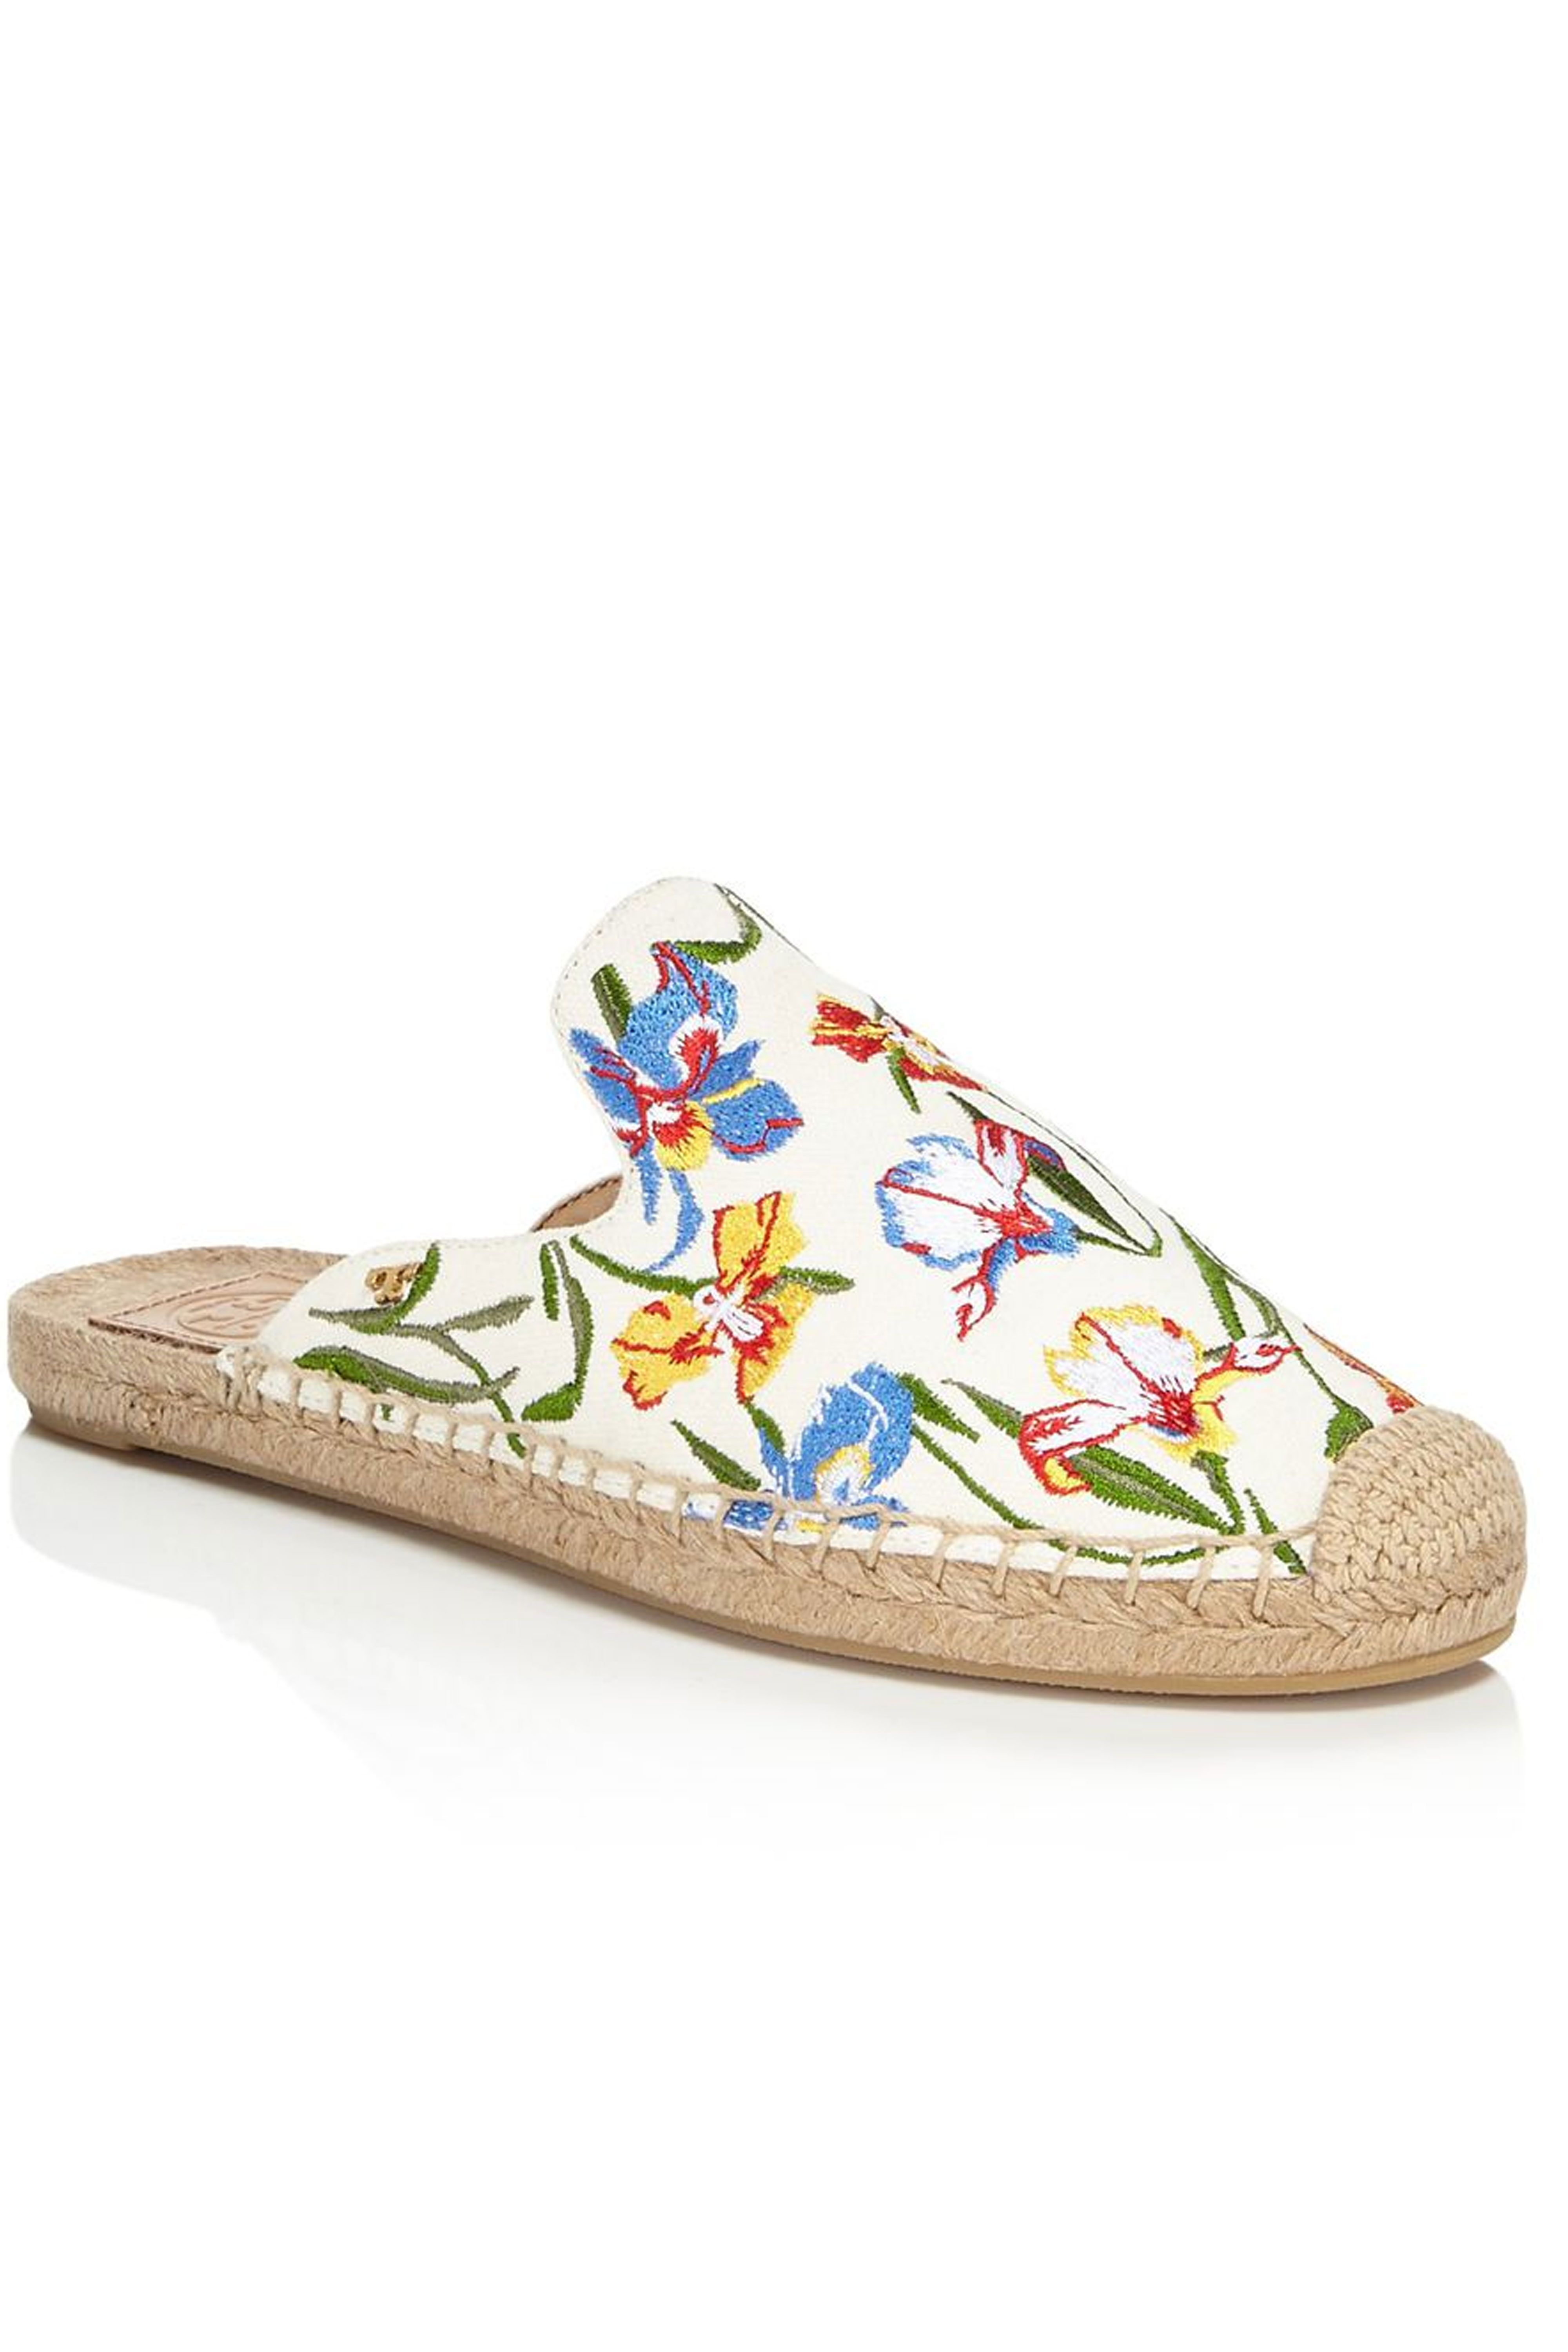 a8f252099cb7f9 29 Preppy Shoes for Women - Preppy Style Sandals